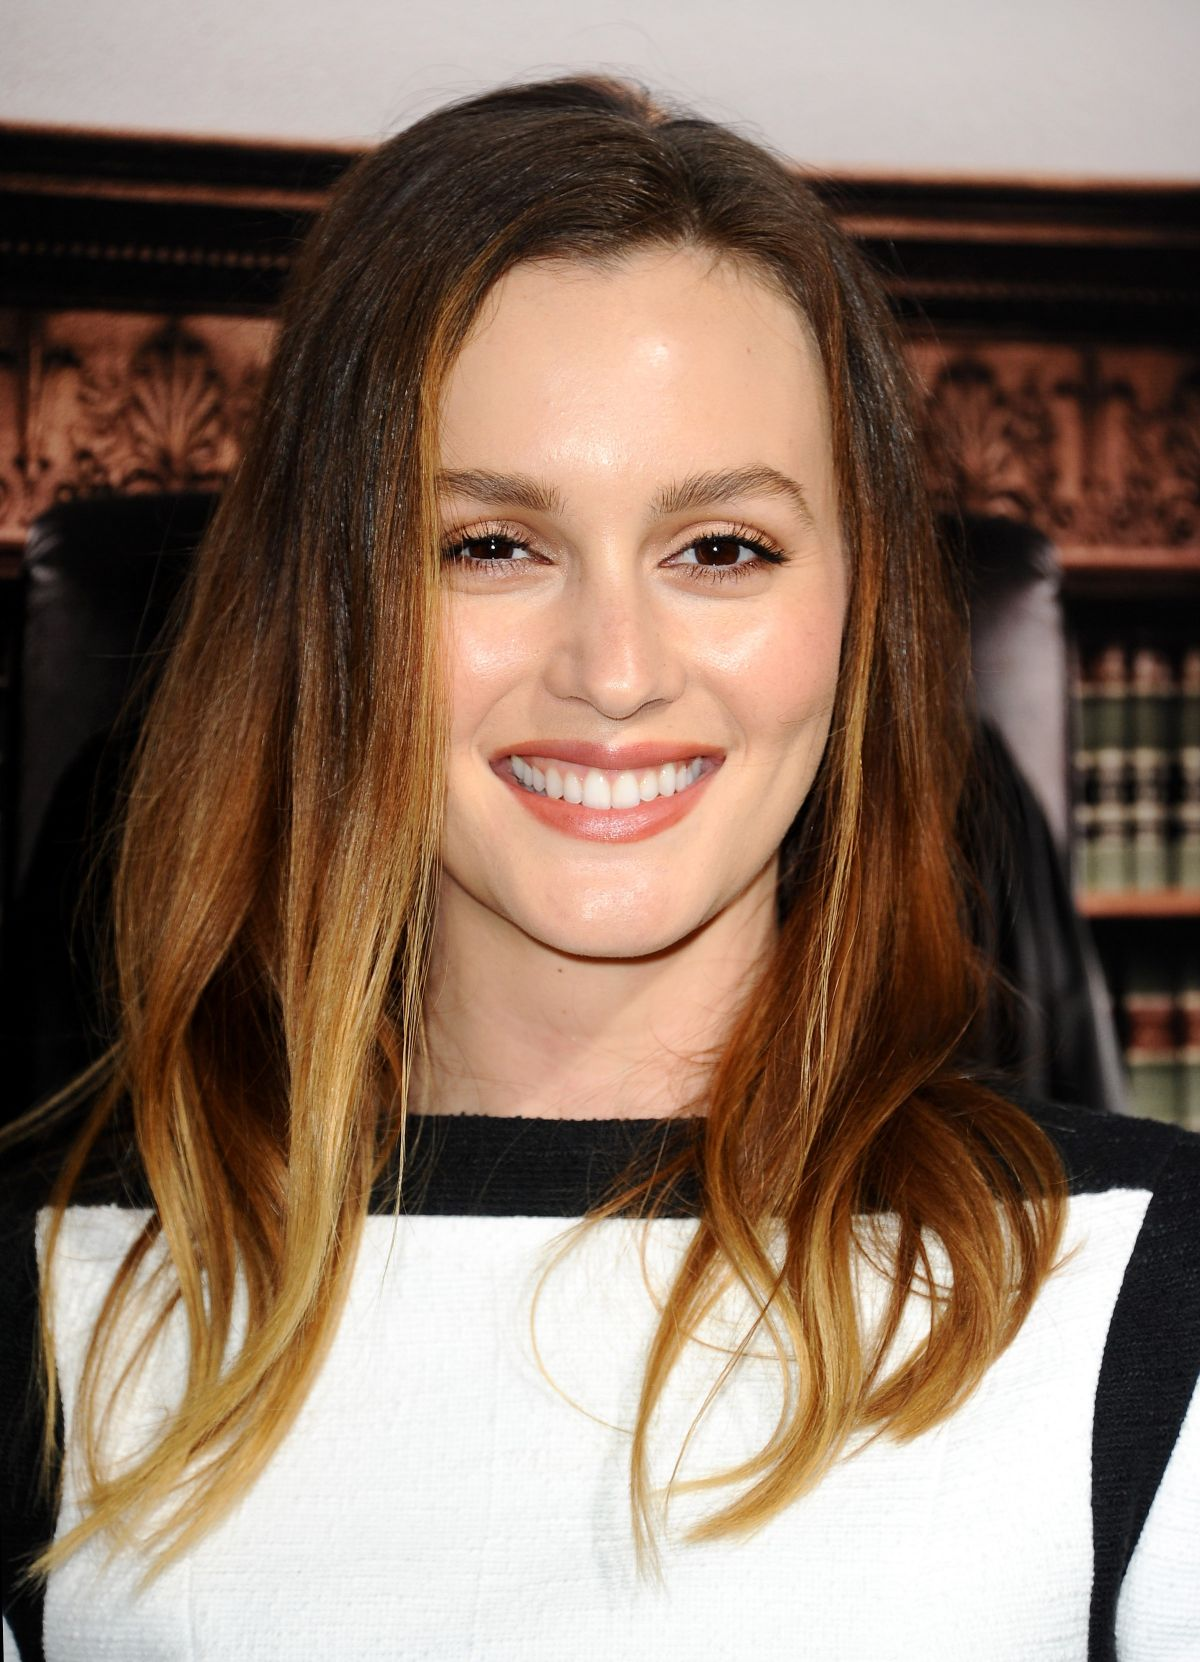 LEIGHTON MEESTER at The Judge Premiere in Los Angeles - HawtCelebs ...